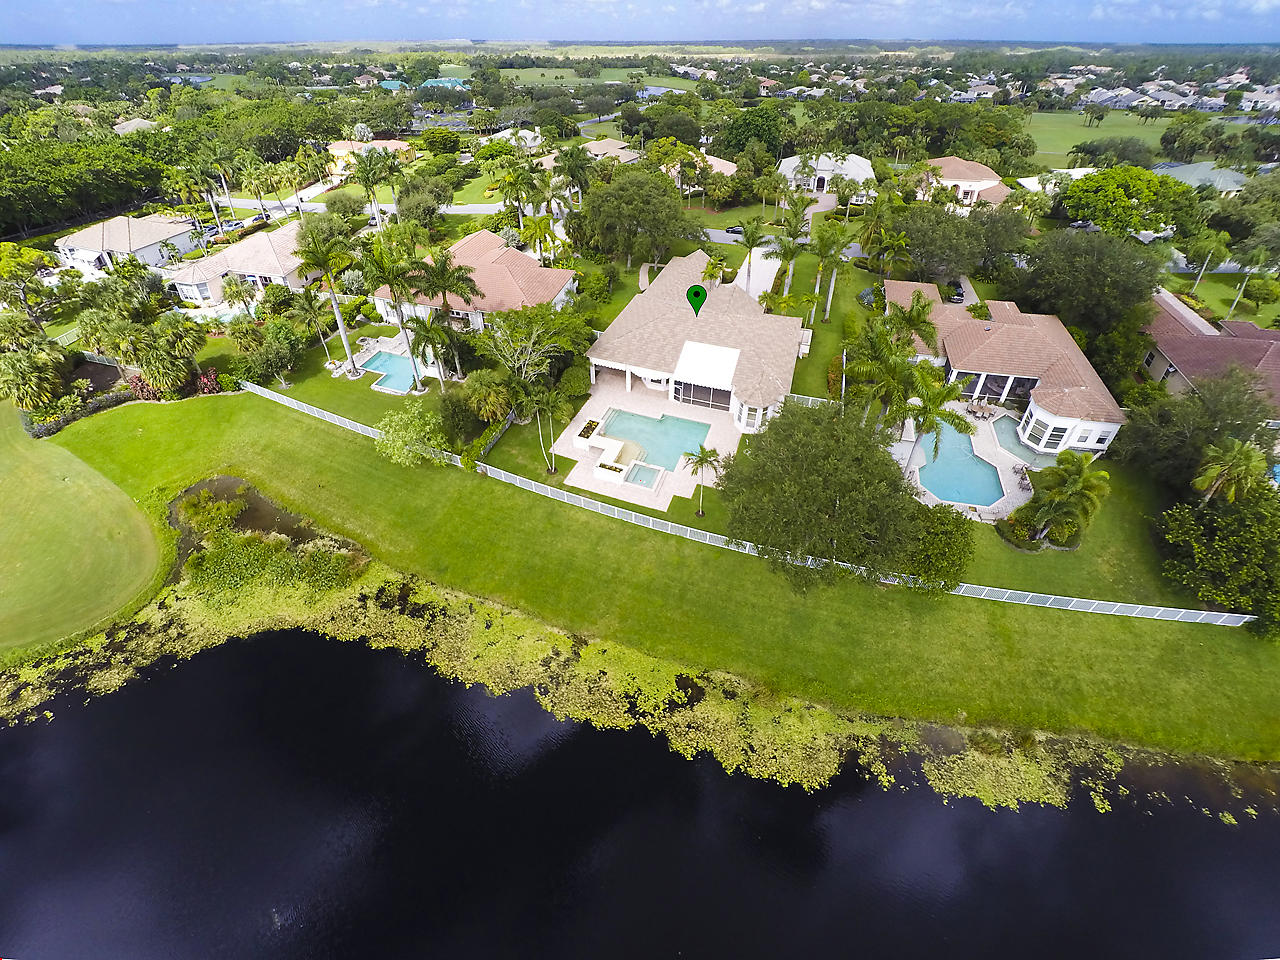 8188 Lakeview Drive, West Palm Beach, Florida 33412, 4 Bedrooms Bedrooms, ,4.1 BathroomsBathrooms,A,Single family,Lakeview,RX-10454884